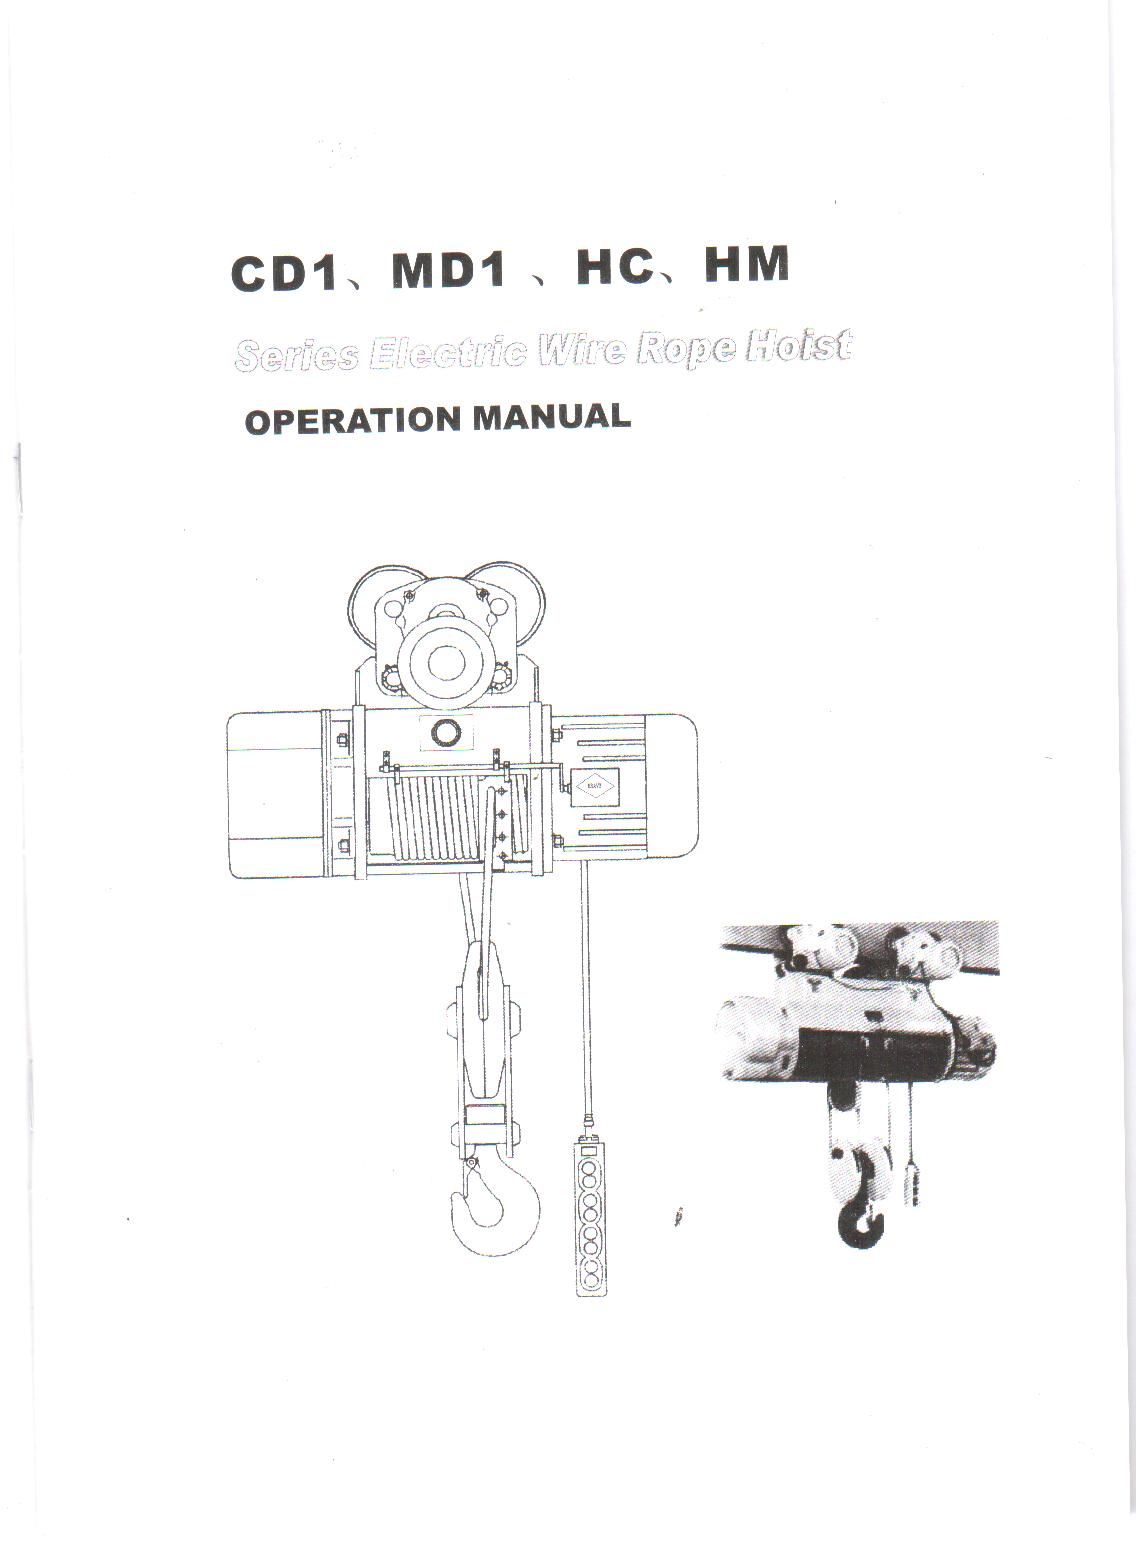 OPERATIONAL MANUAL for the CD1 MD1 Wire Rope Electric Hoist5 003.jpg